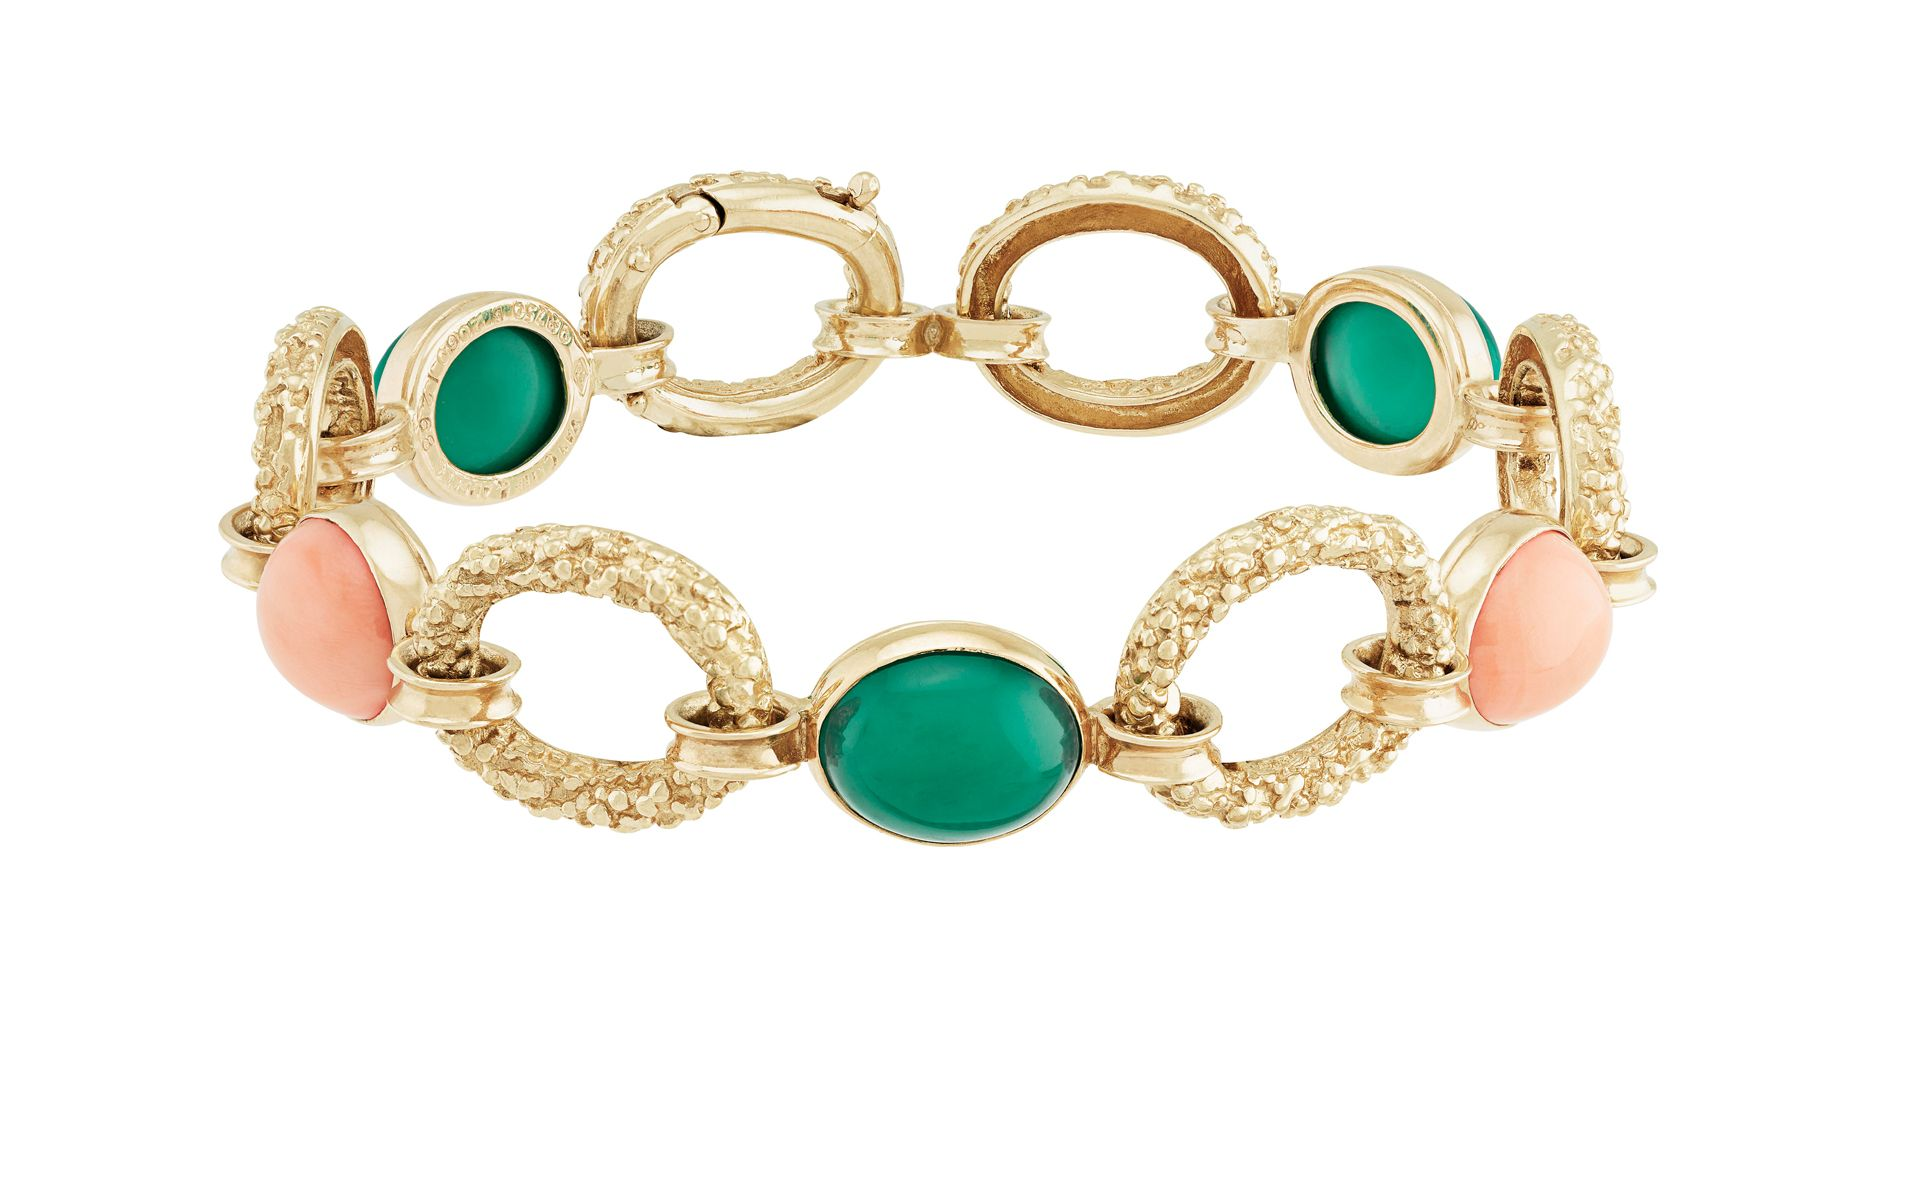 5 Tips For Collecting Heritage Jewellery, According To A Certified Gemologist